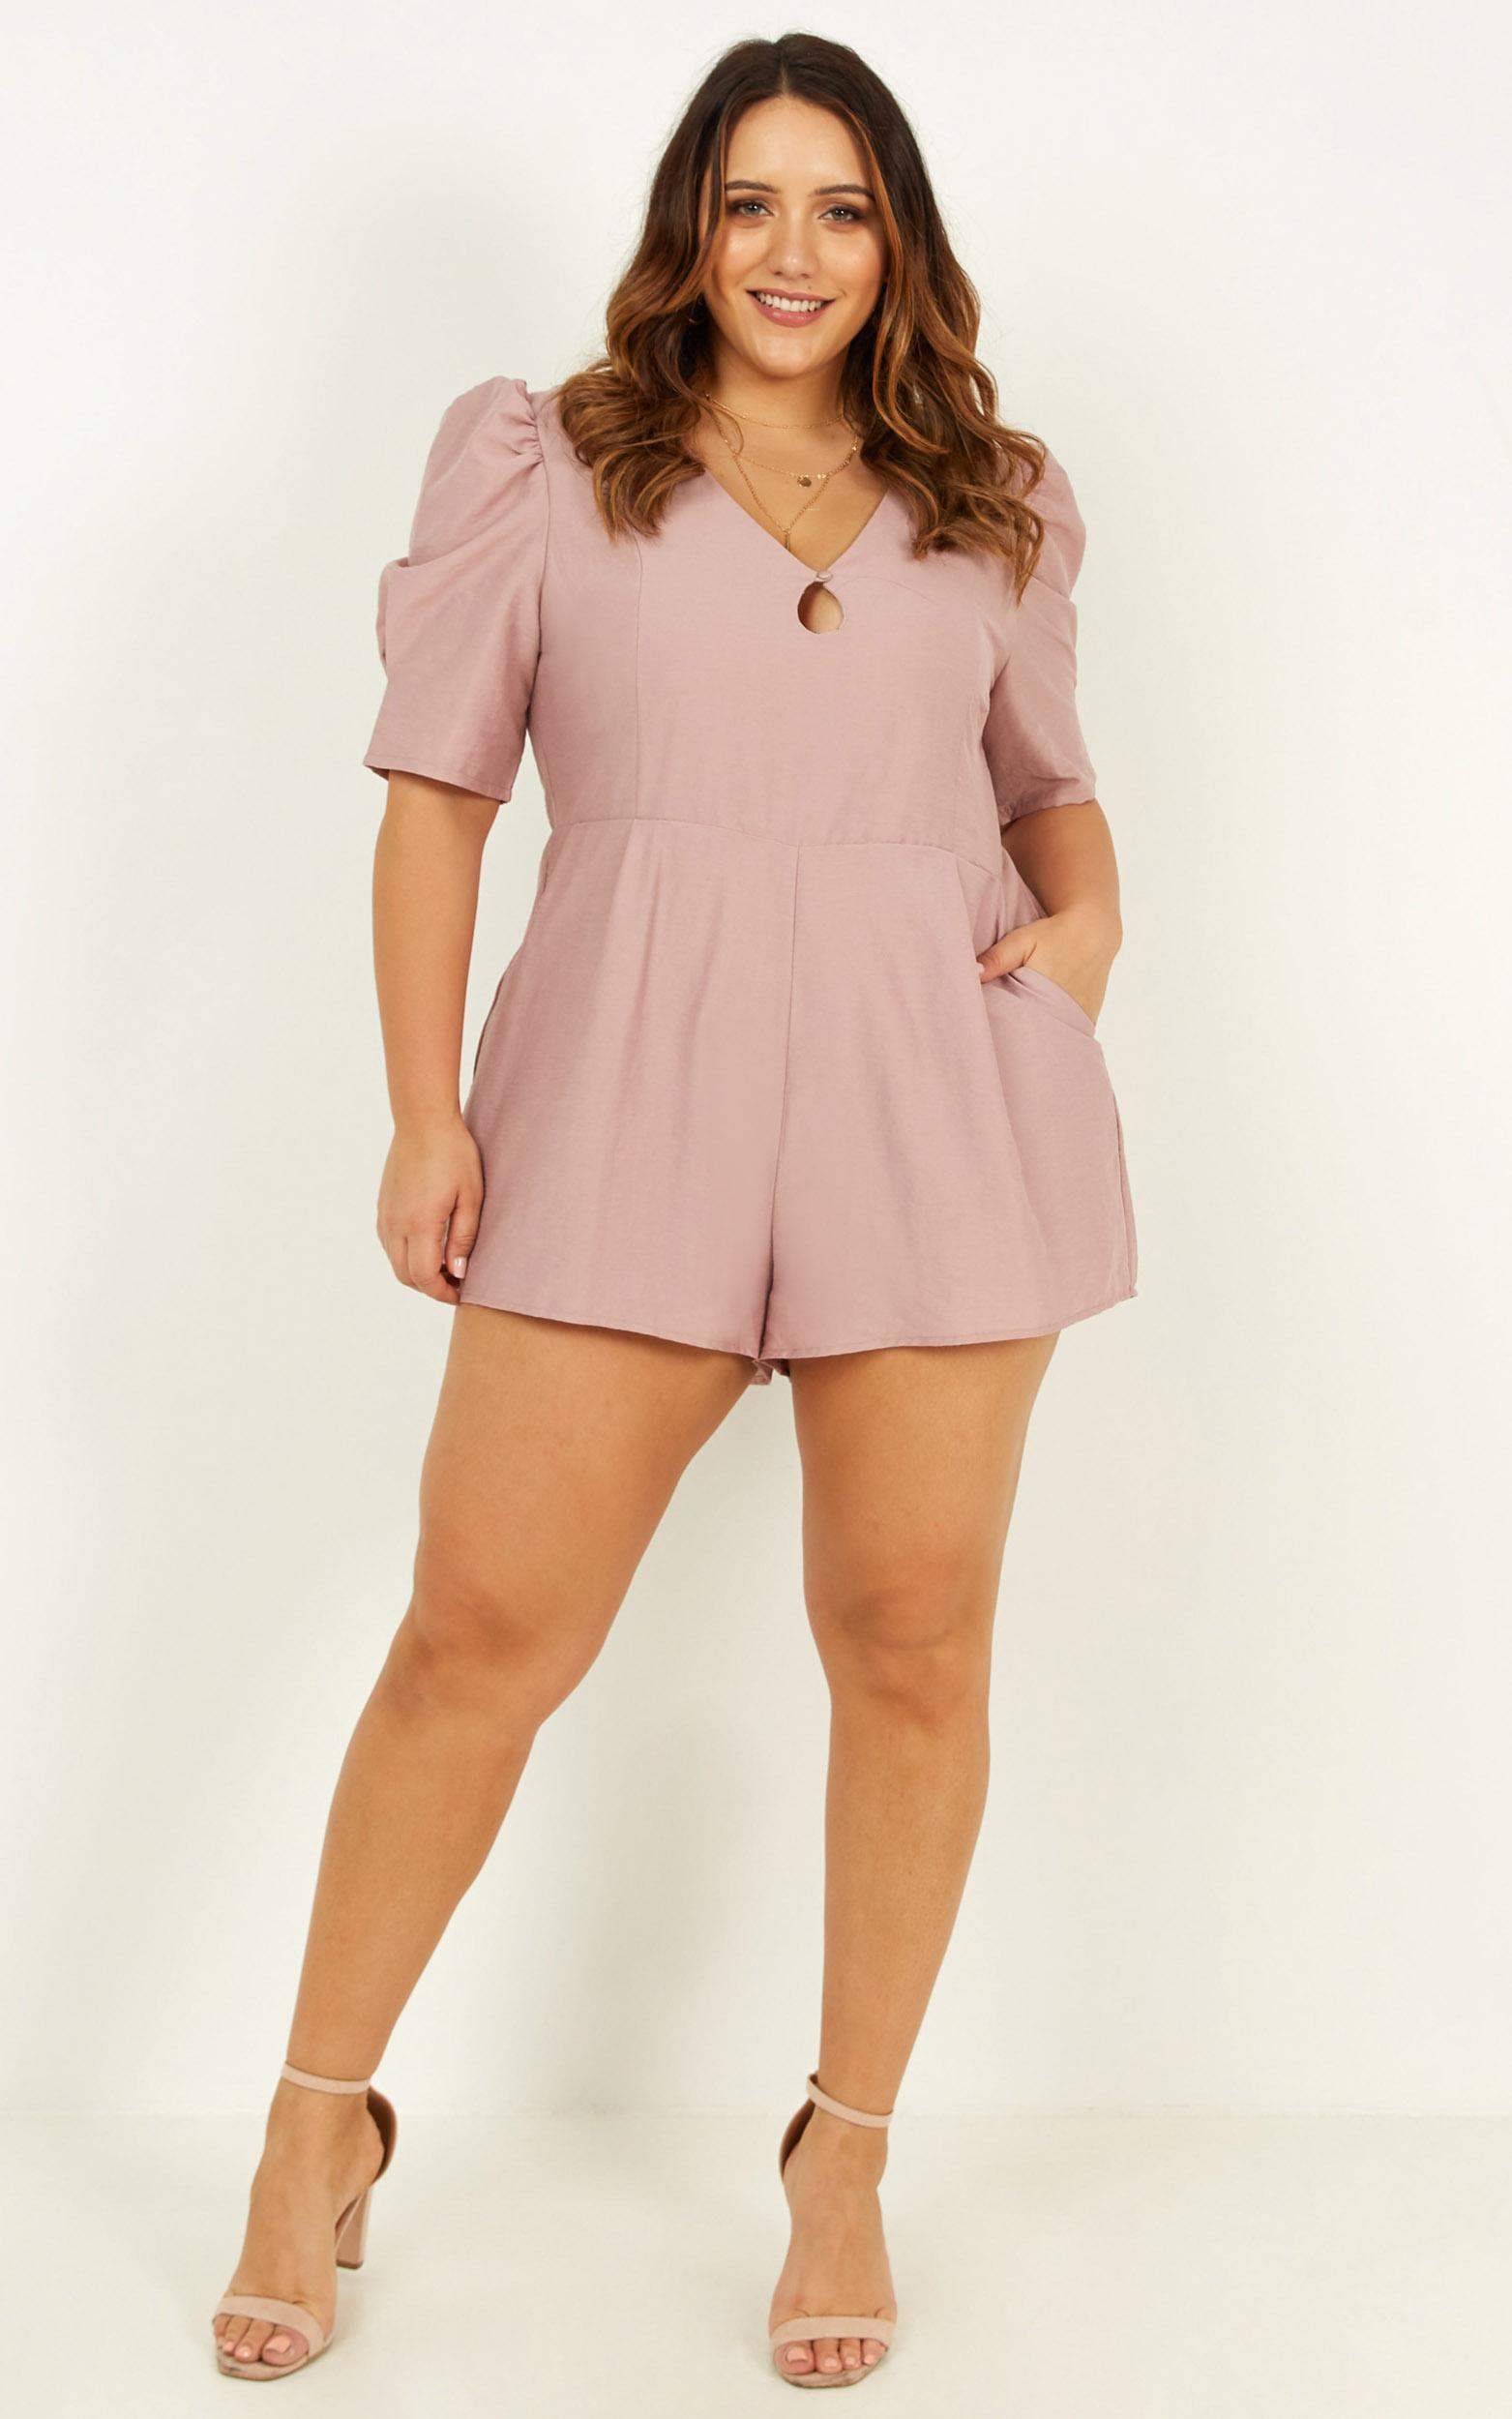 Sneaking Around Playsuit in dusty rose - 18 (XXXL), Pink, hi-res image number null